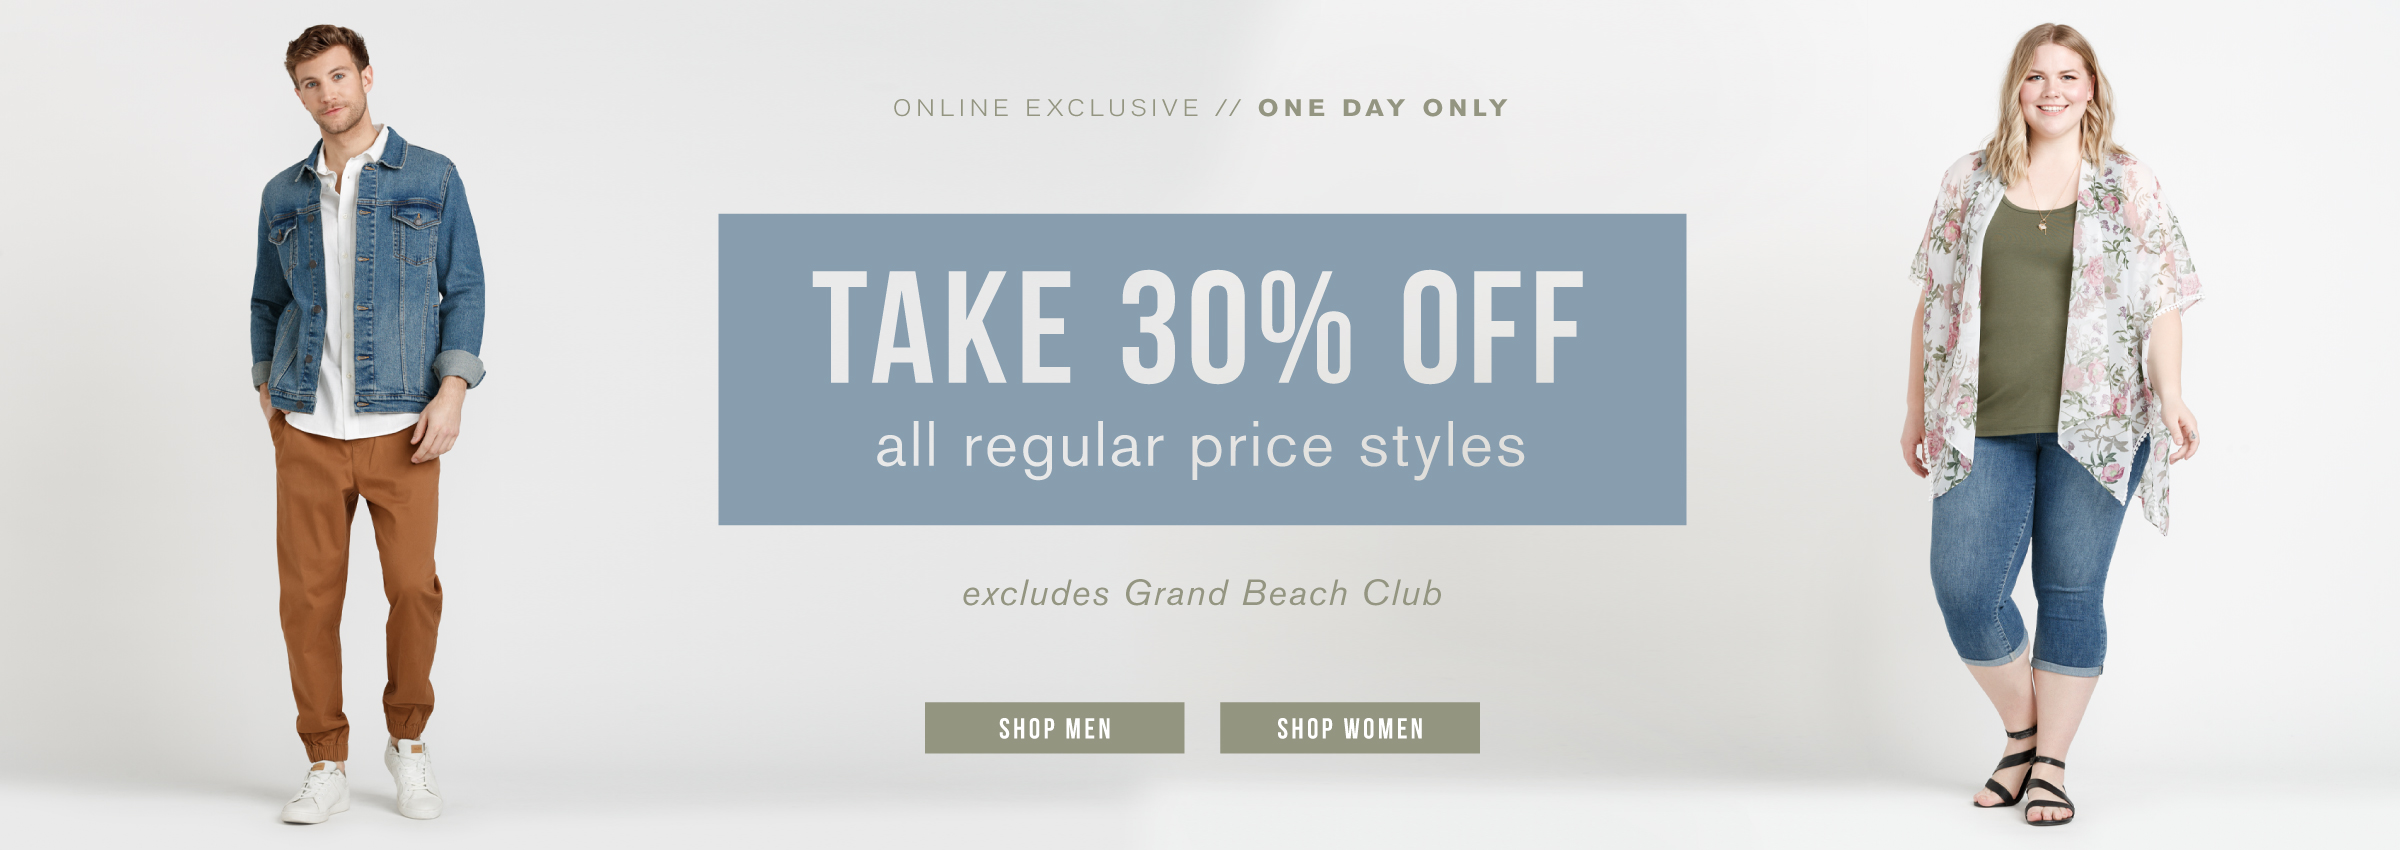 Online exclusive. One day only. Take 30% off all regular price styles. Excludes Grand Beach Club.